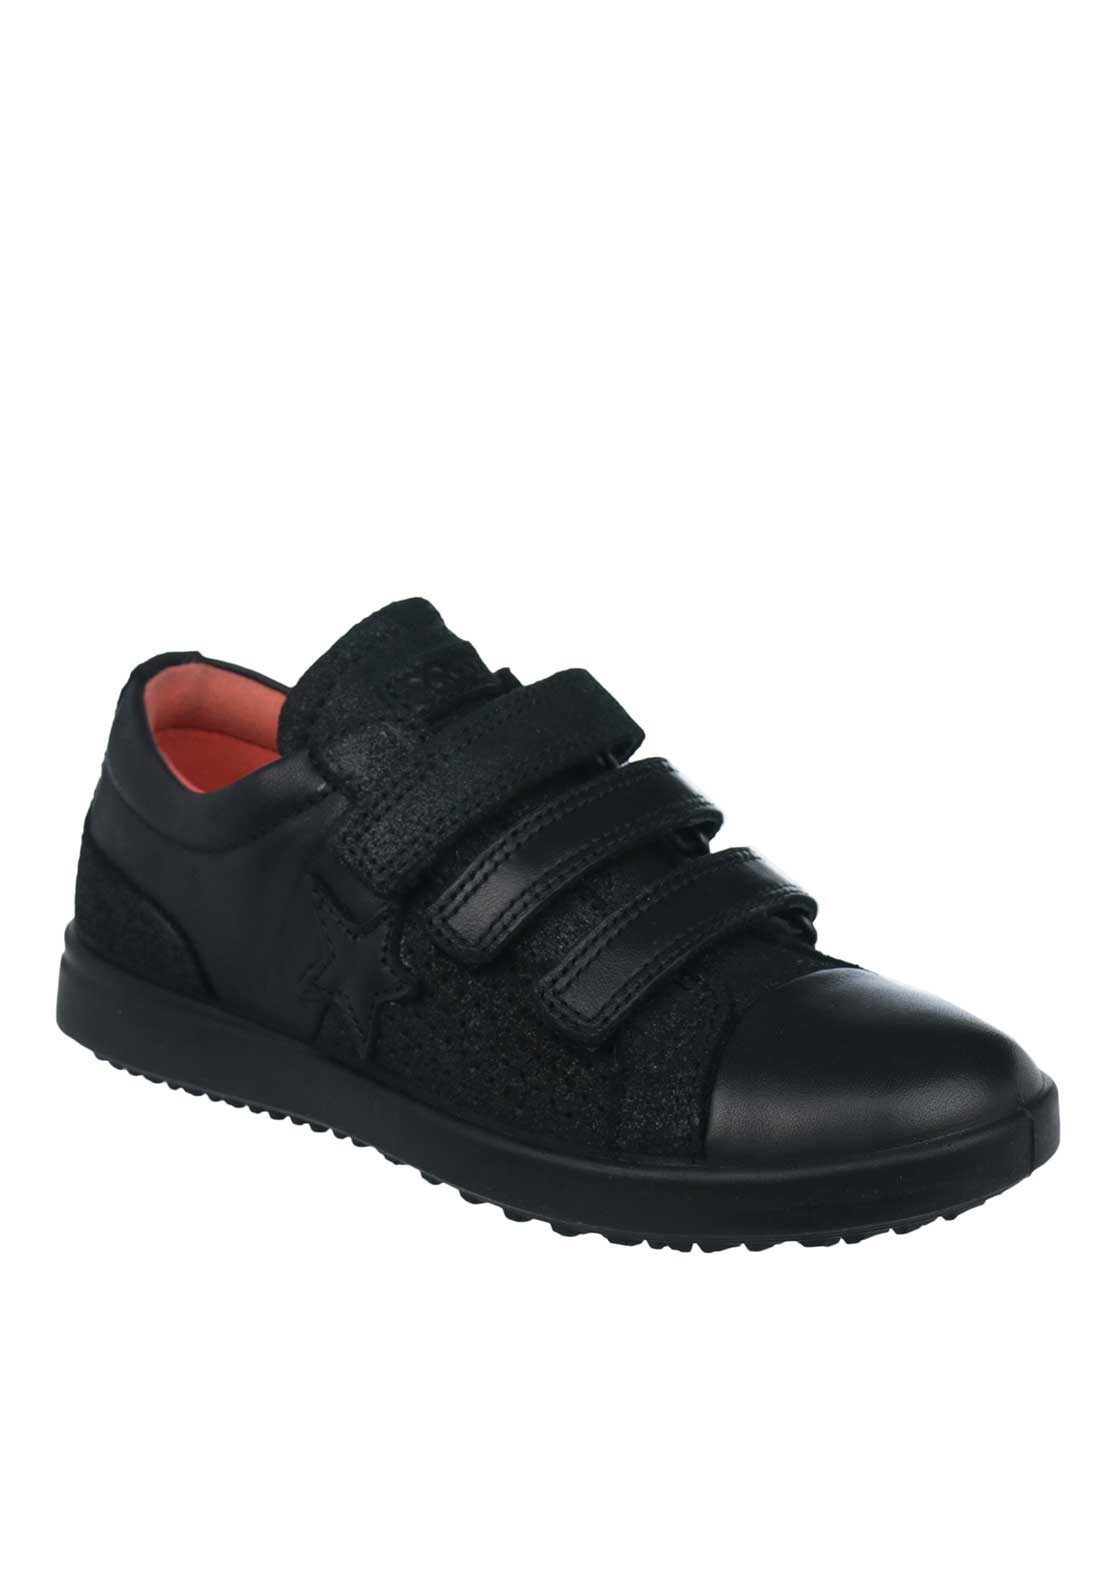 Ecco Girls Leather Mix Velcro Strap School Shoes, Black